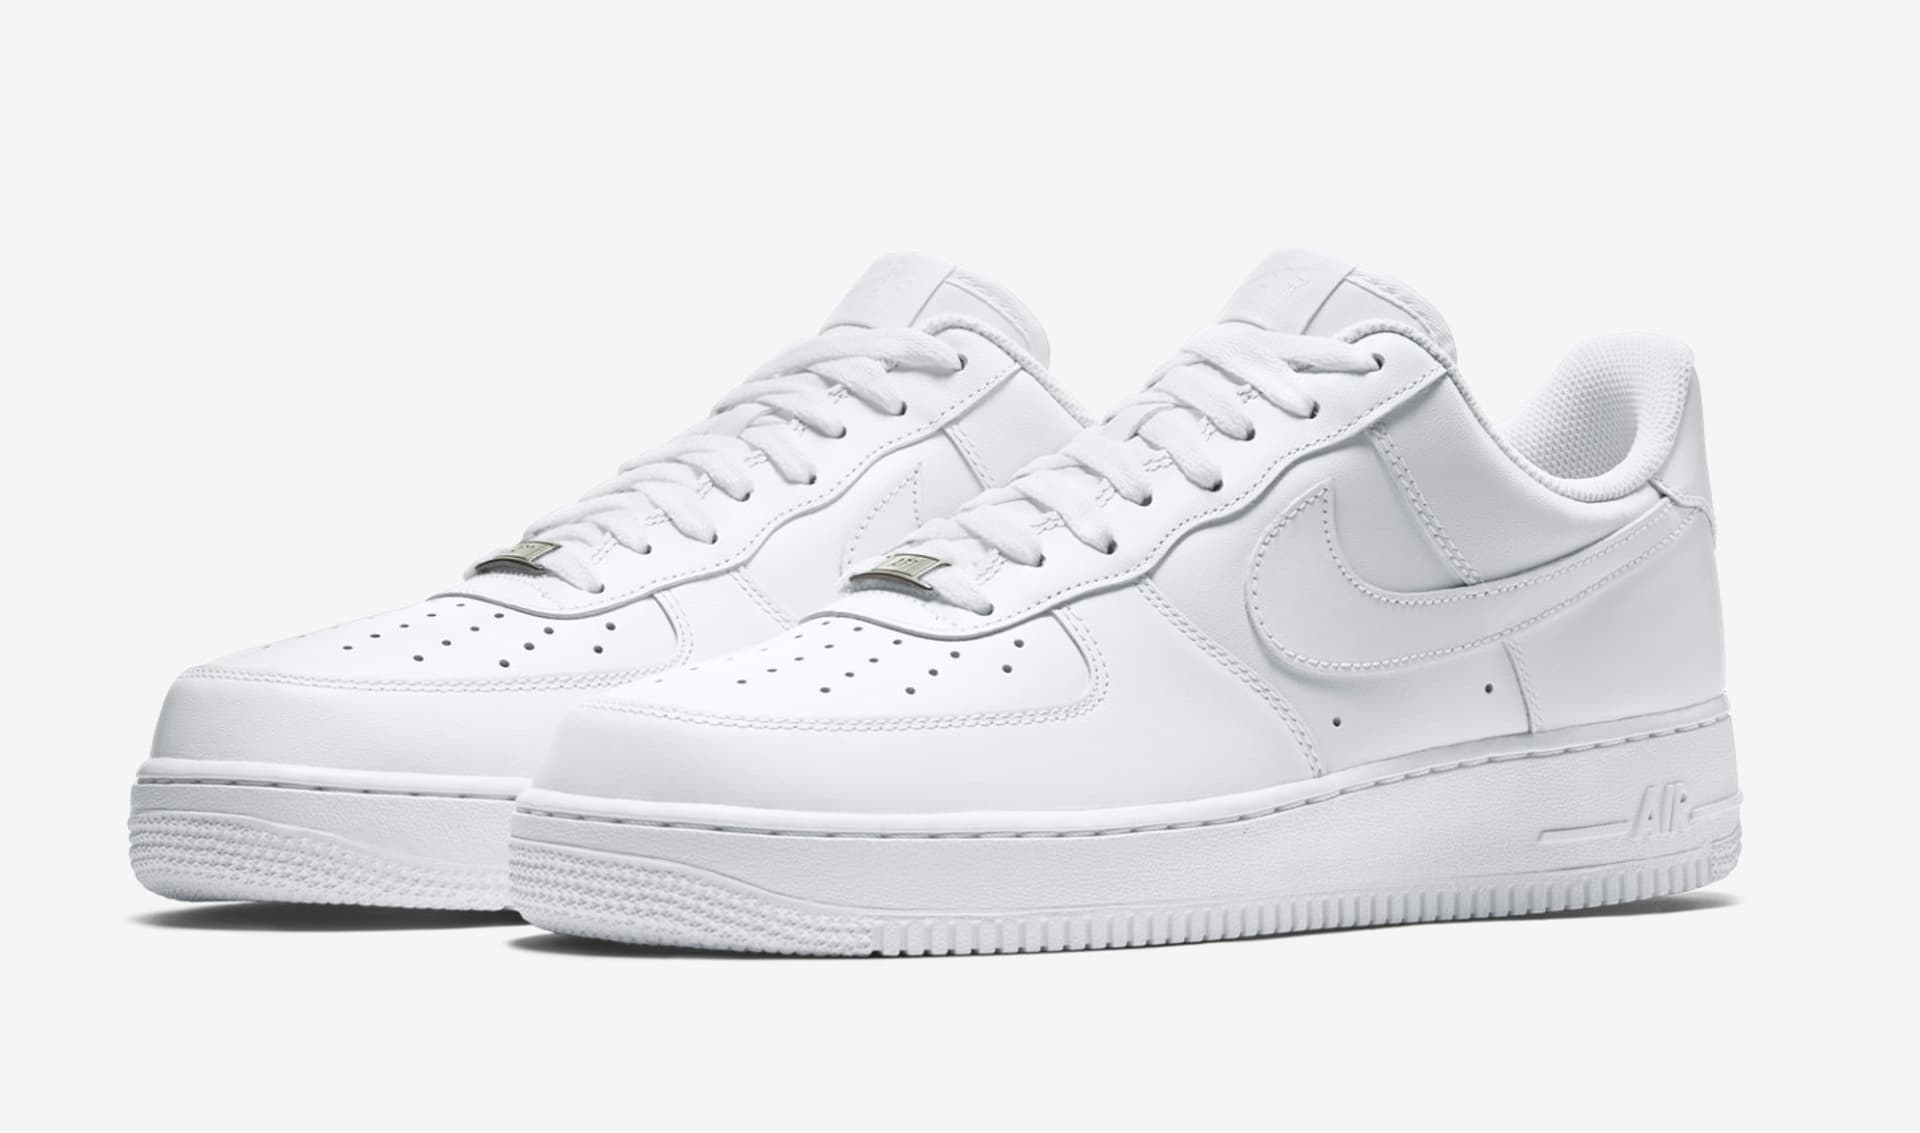 Details about Nike Air Force 1 Premium AF1 Leather Nike ID U.K. Size 7 White And Blue New